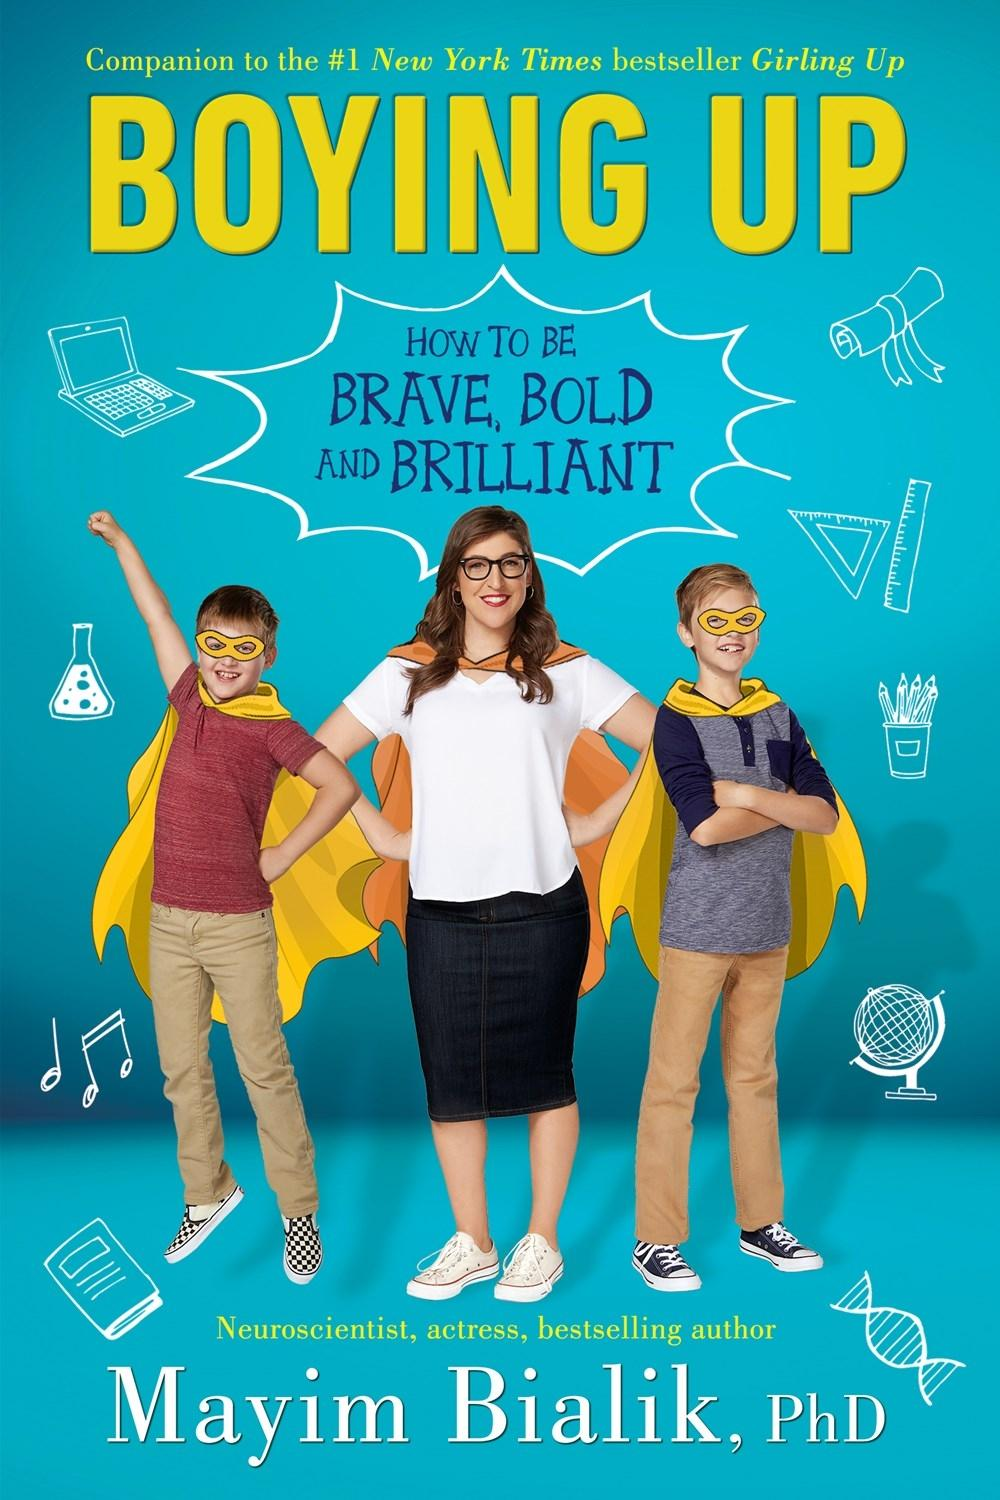 Boying Up: How to Be Brave, Bold and Brilliant by  Mayim Bialik